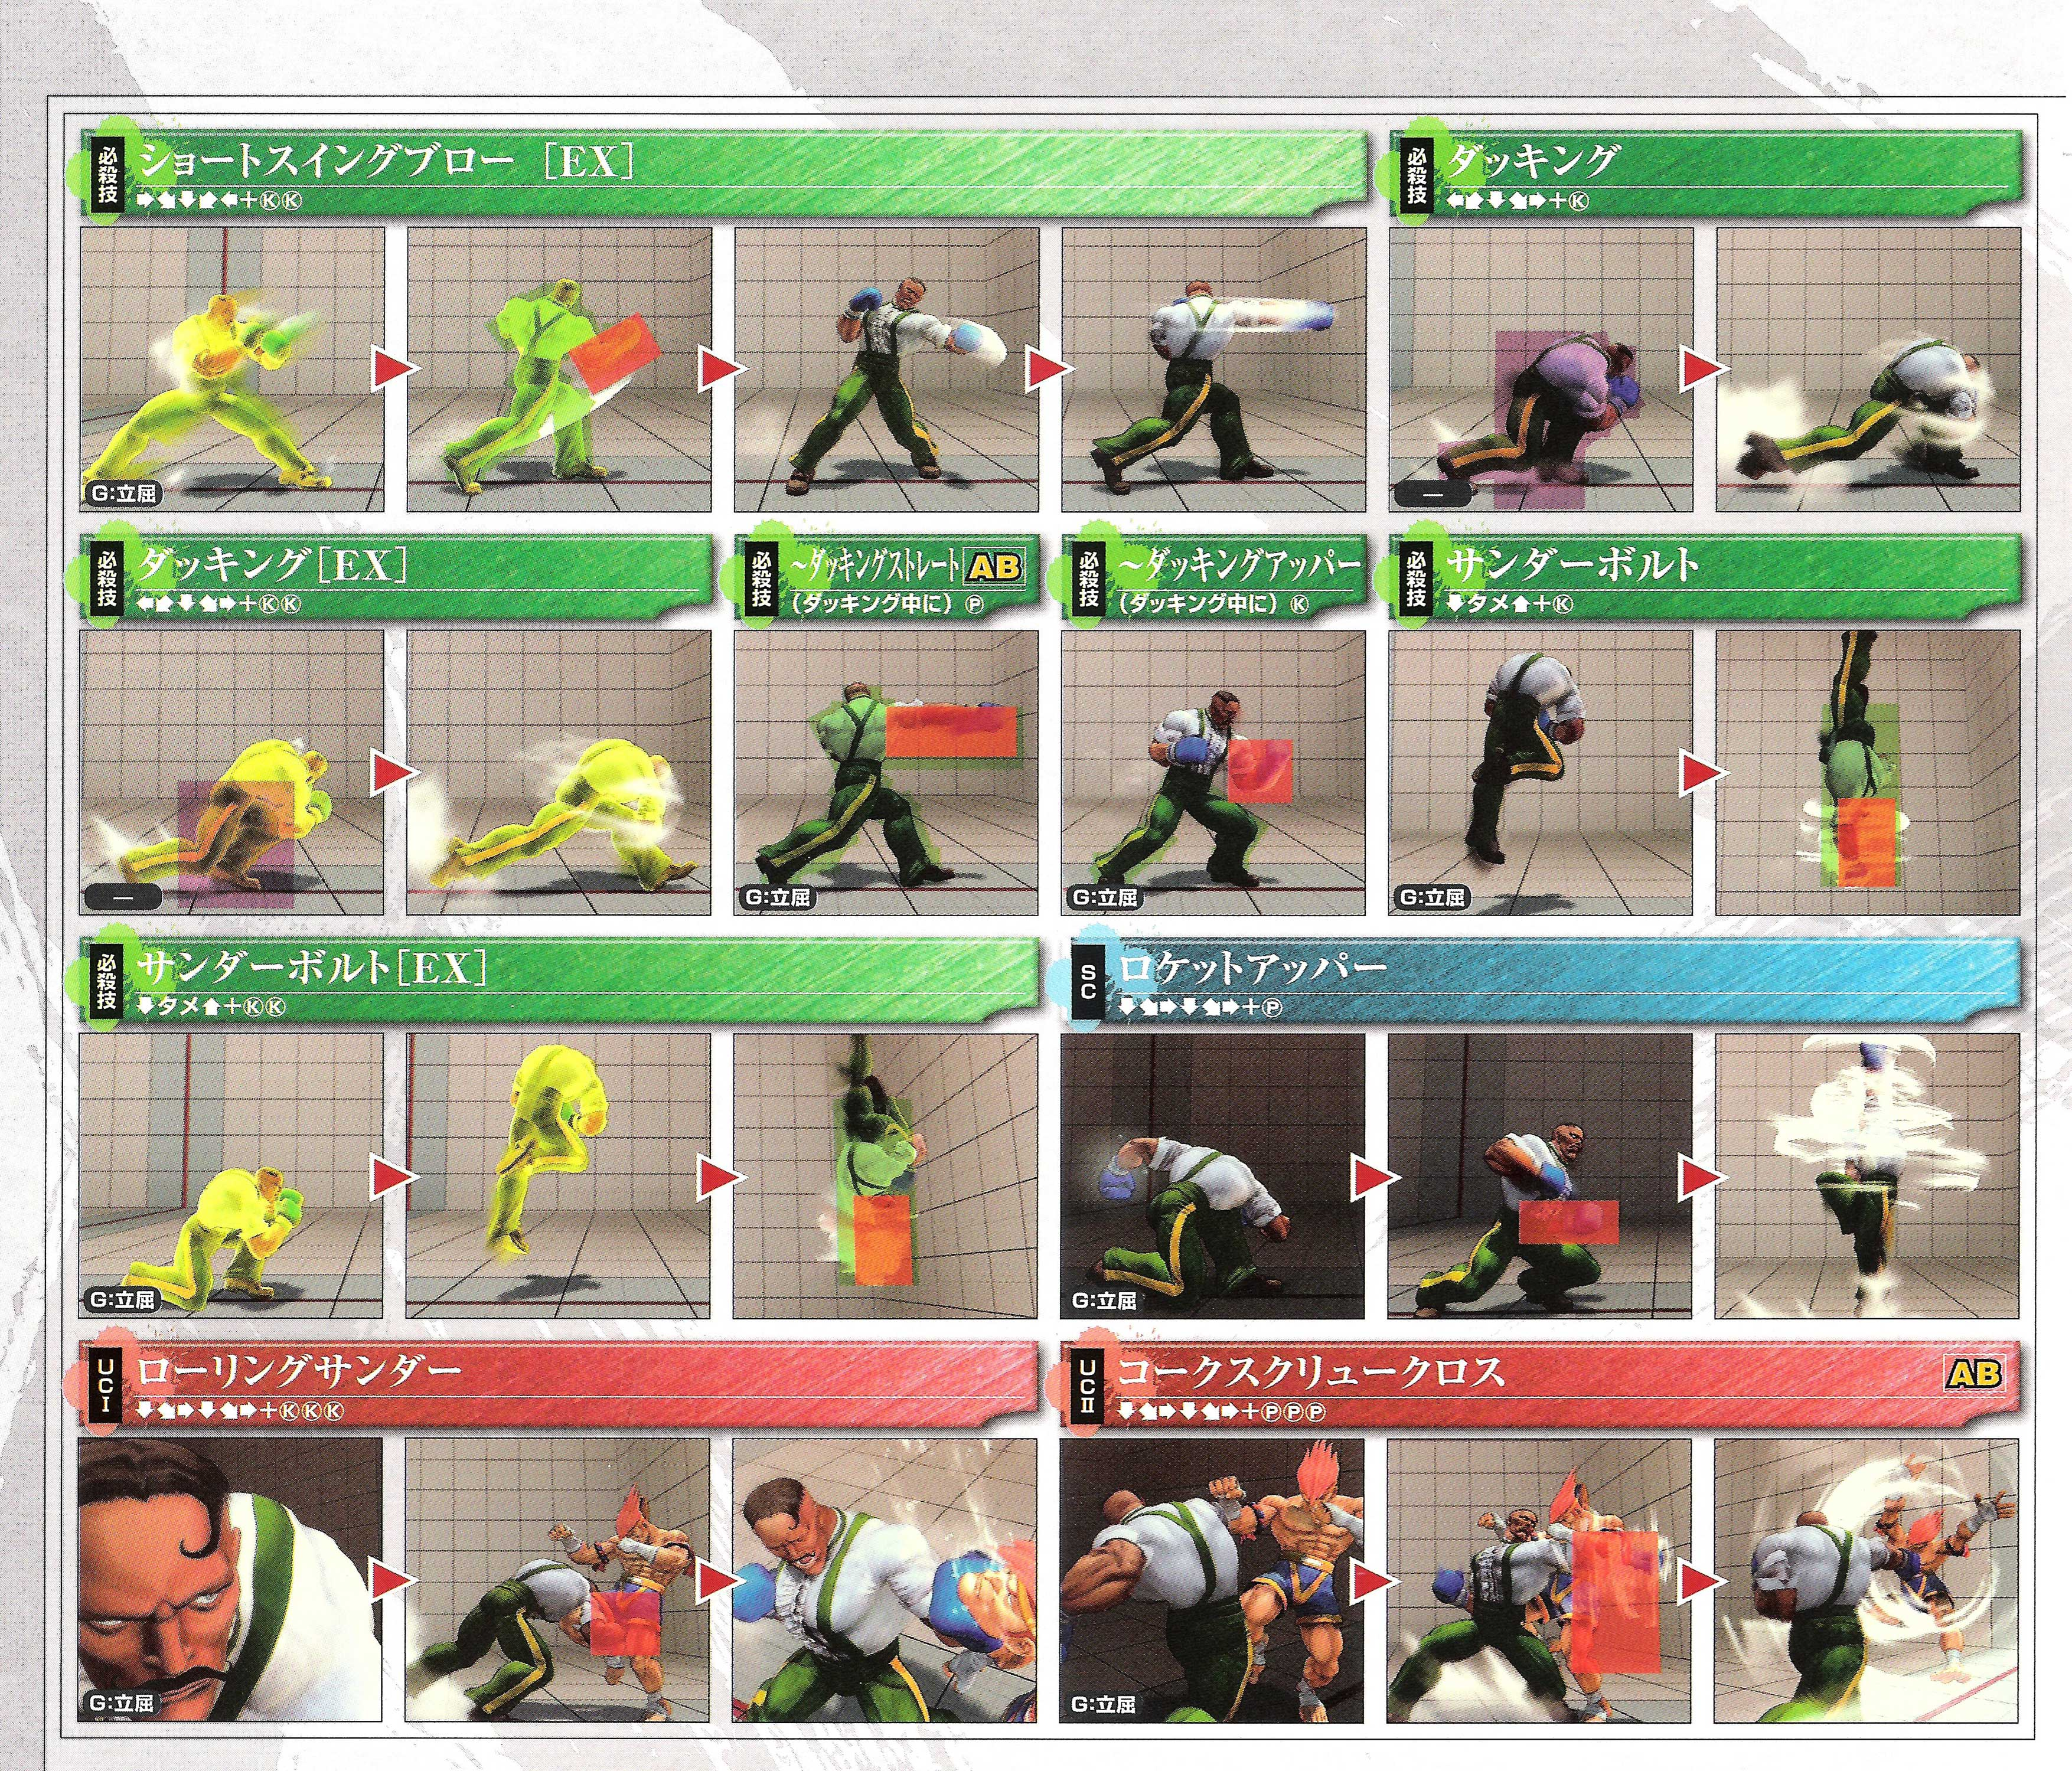 Dudley's hit box information for Super Street Fighter 4 Arcade Edition image #3